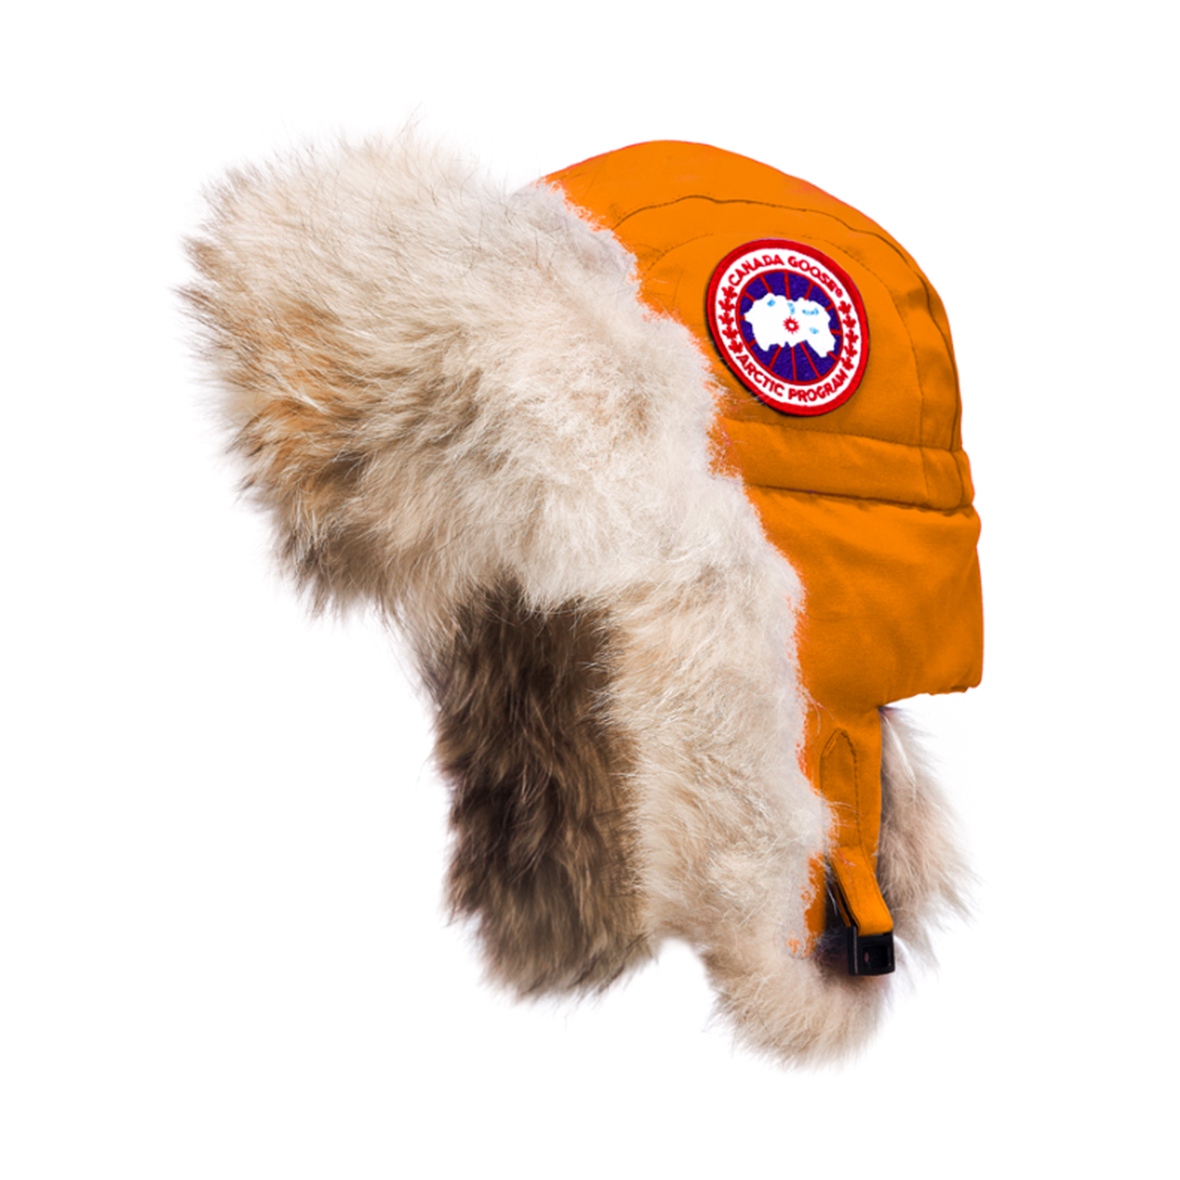 Canada Goose Unisex Aviator Hat SUNSET ORANGE For Men